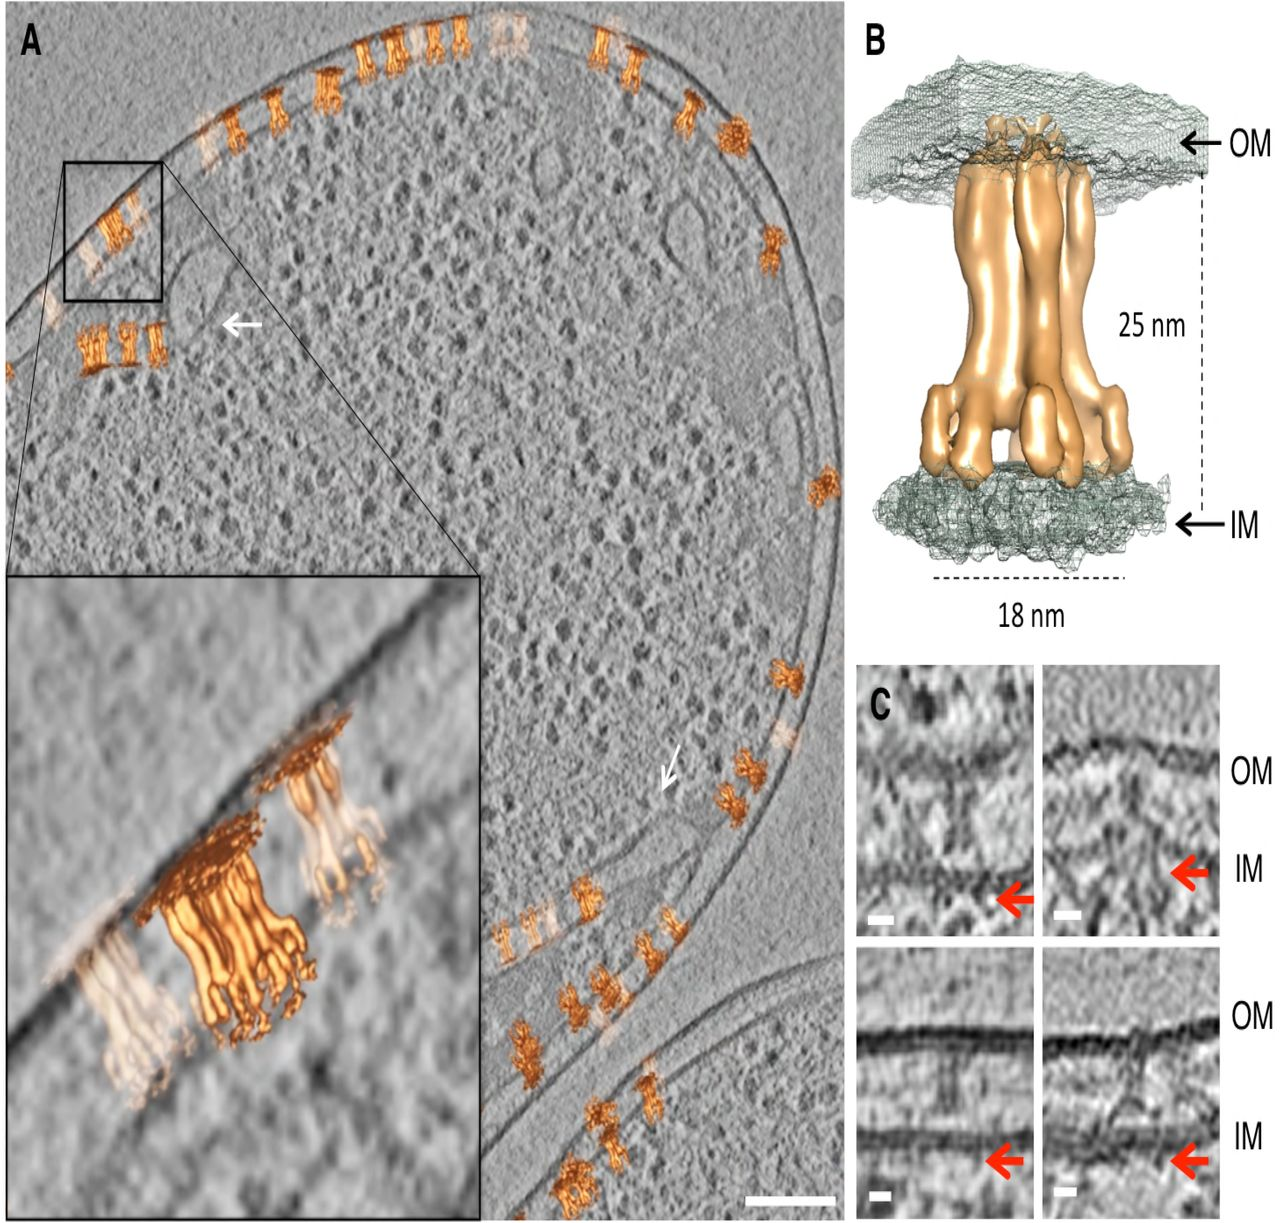 In situ and high-resolution Cryo-EM structure of the Type VI